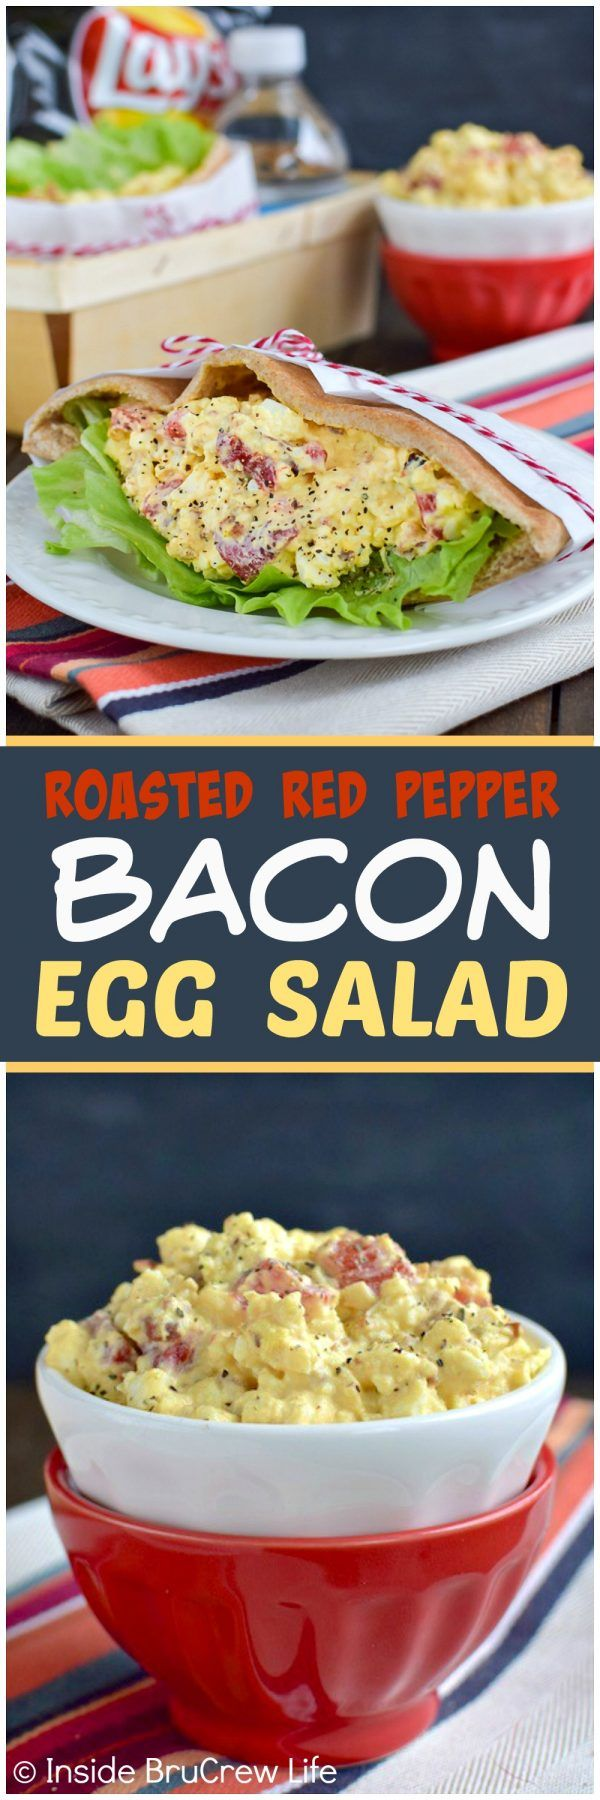 Roasted Red Pepper and Bacon Egg Salad - peppers and bacon add a fun twist to this traditional egg salad. Great recipe to use up those hard boiled eggs!